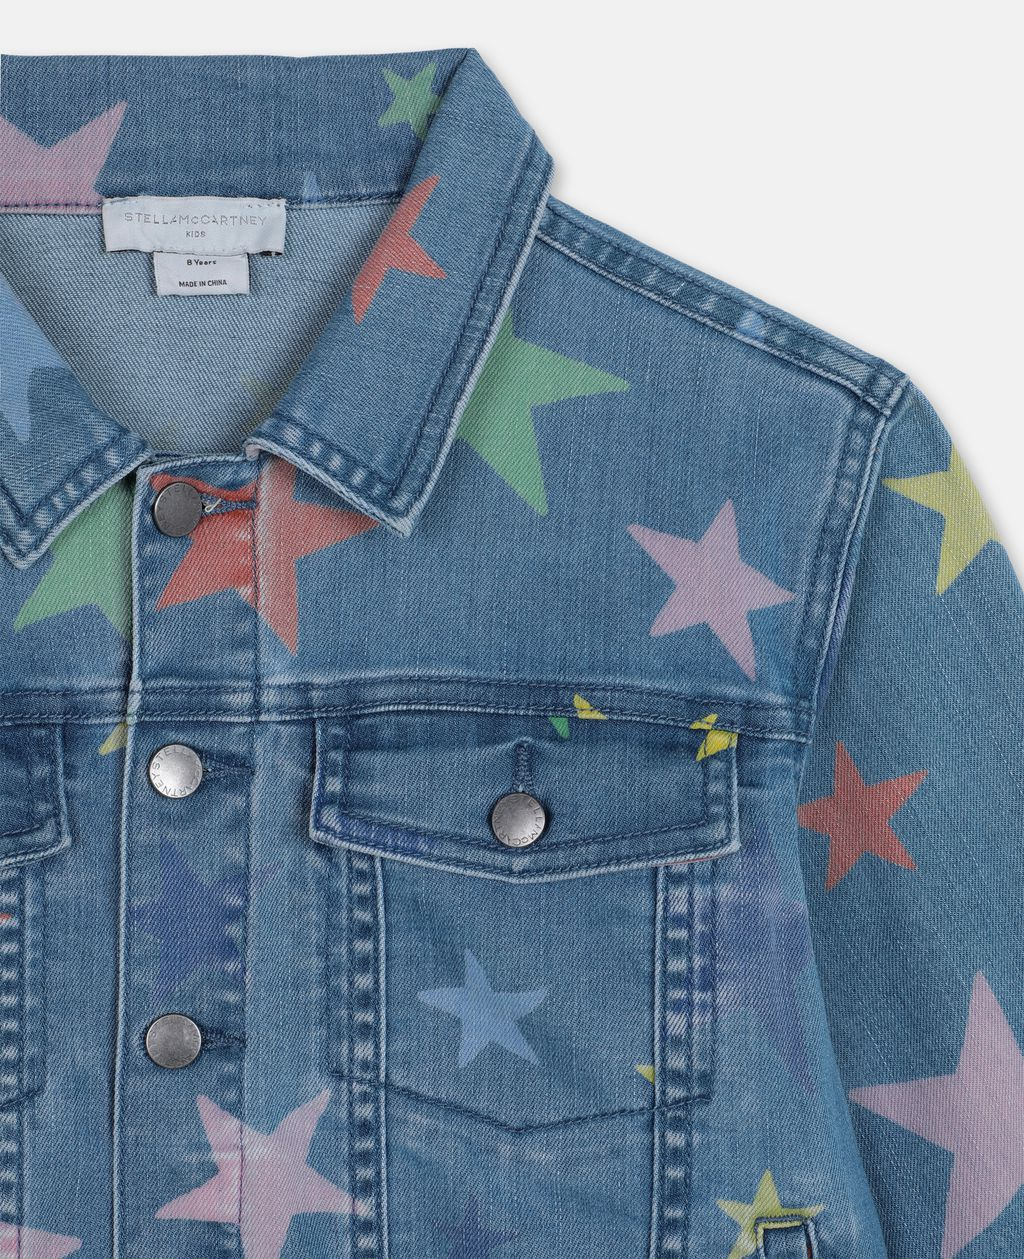 GIACCHETTO IN JEANS STARS